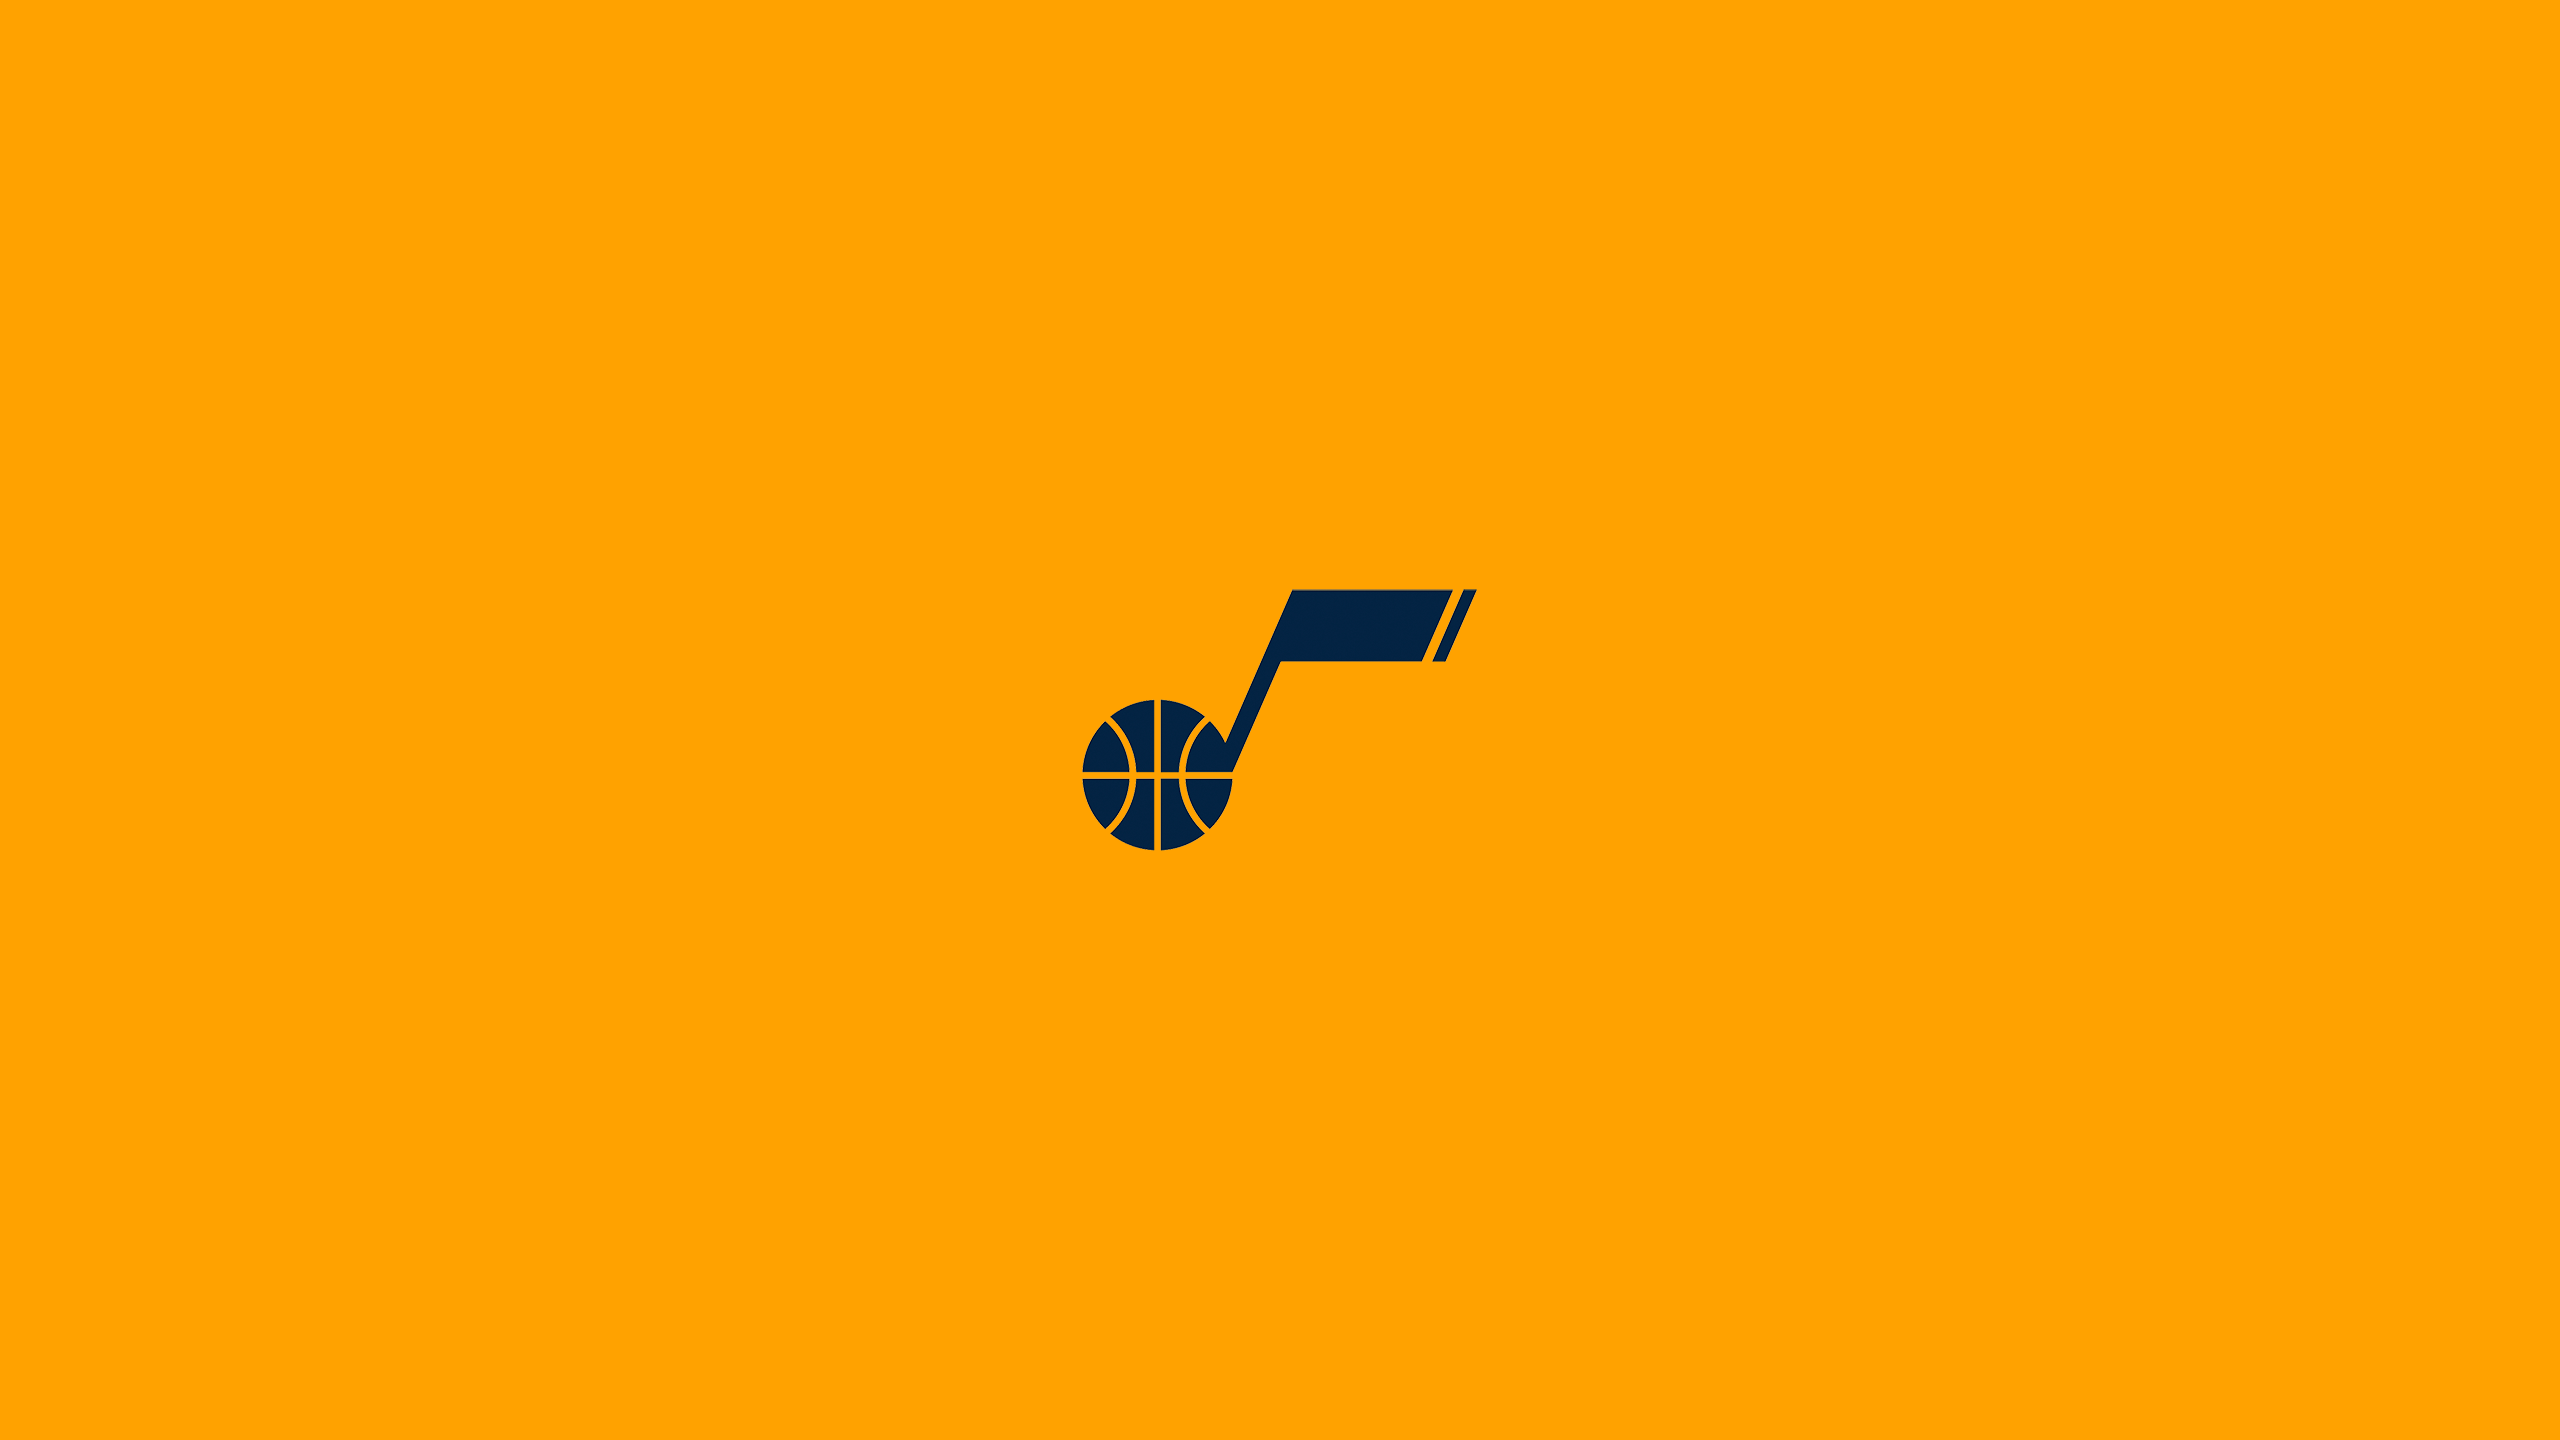 Utah Jazz (Alt Uniform)